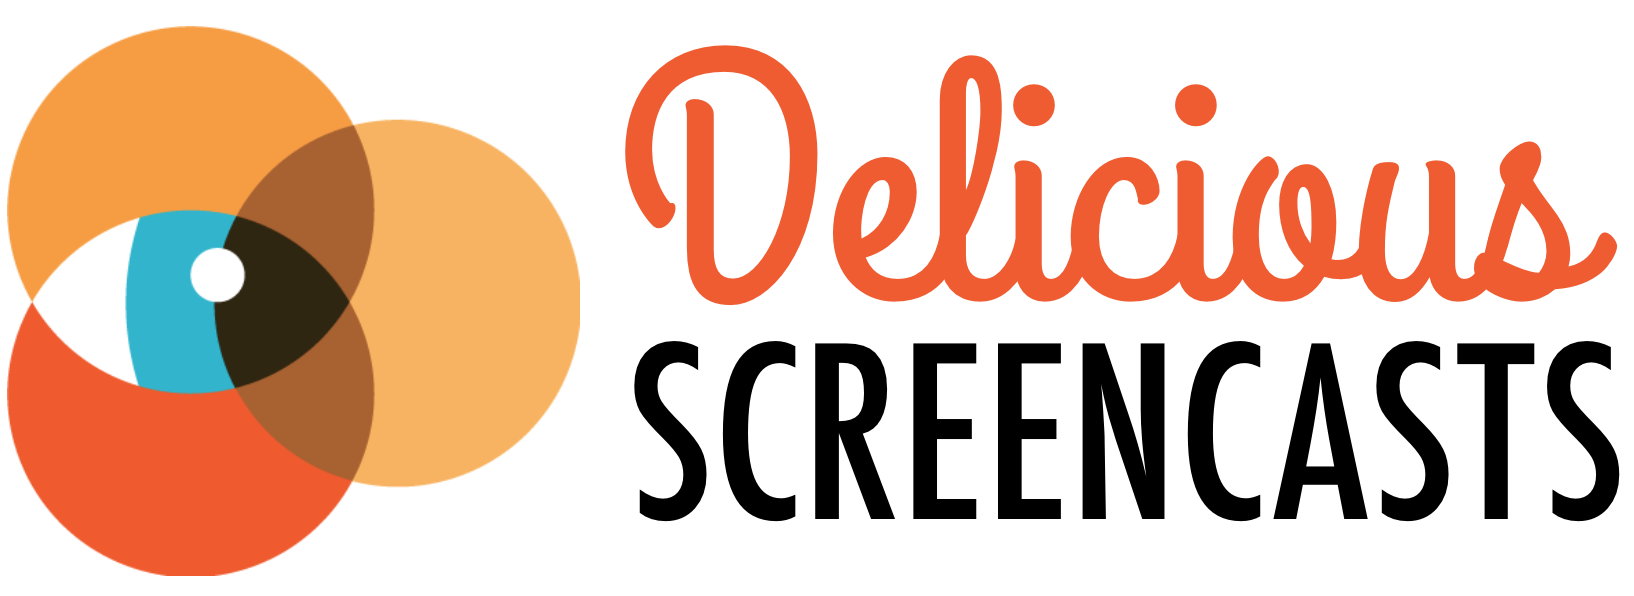 Delicious Screencasts